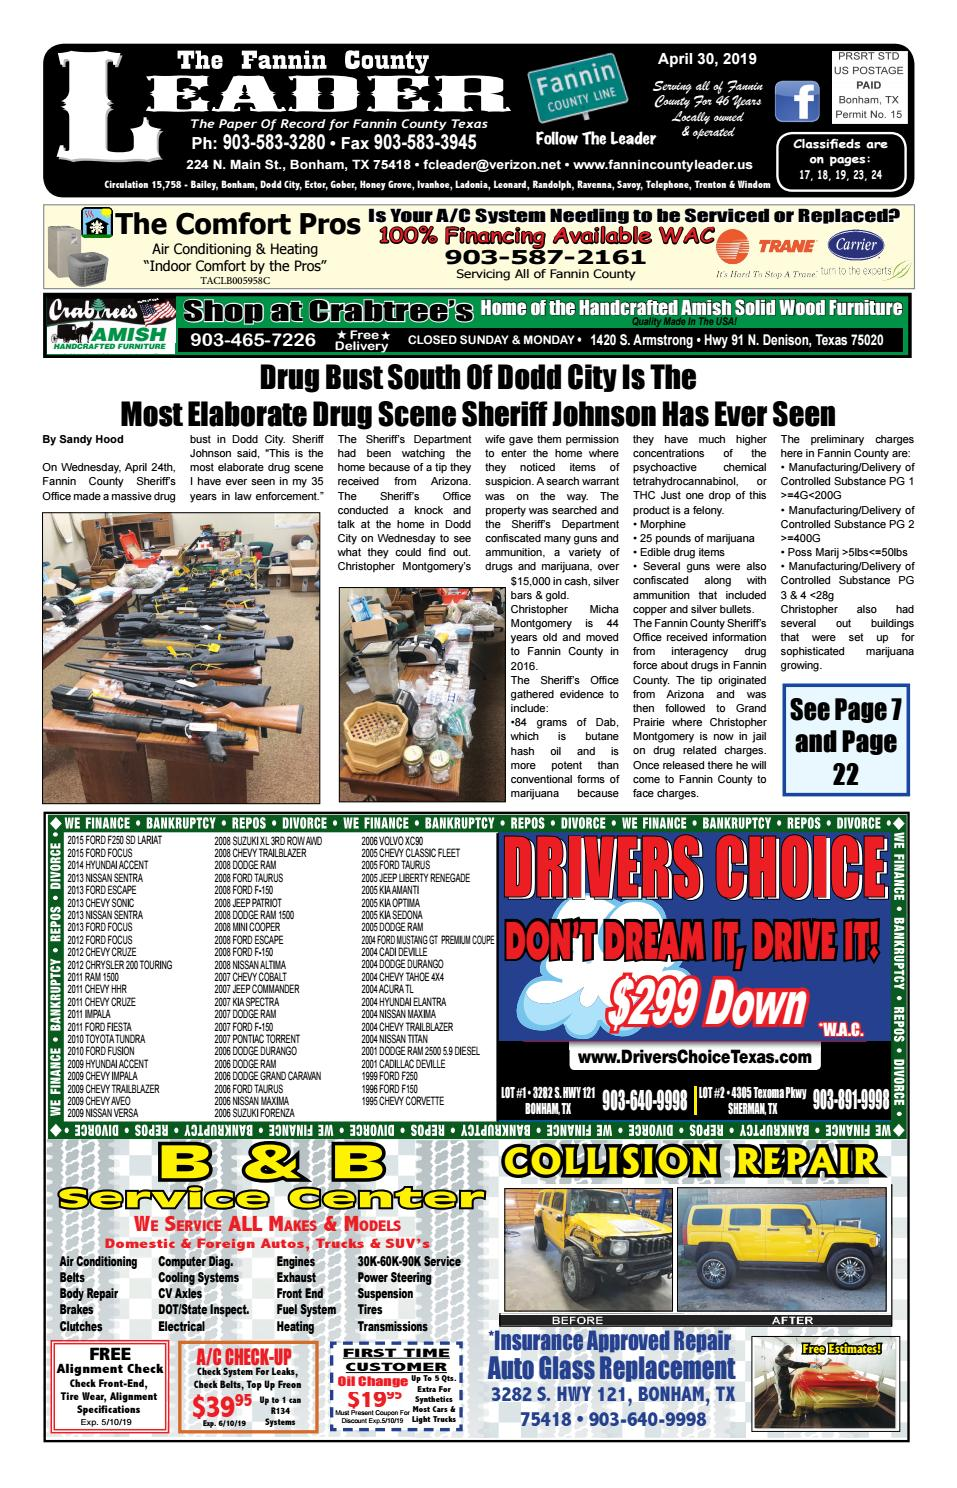 4-30-19 Leader E-Edition by The Fannin County Leader - issuu